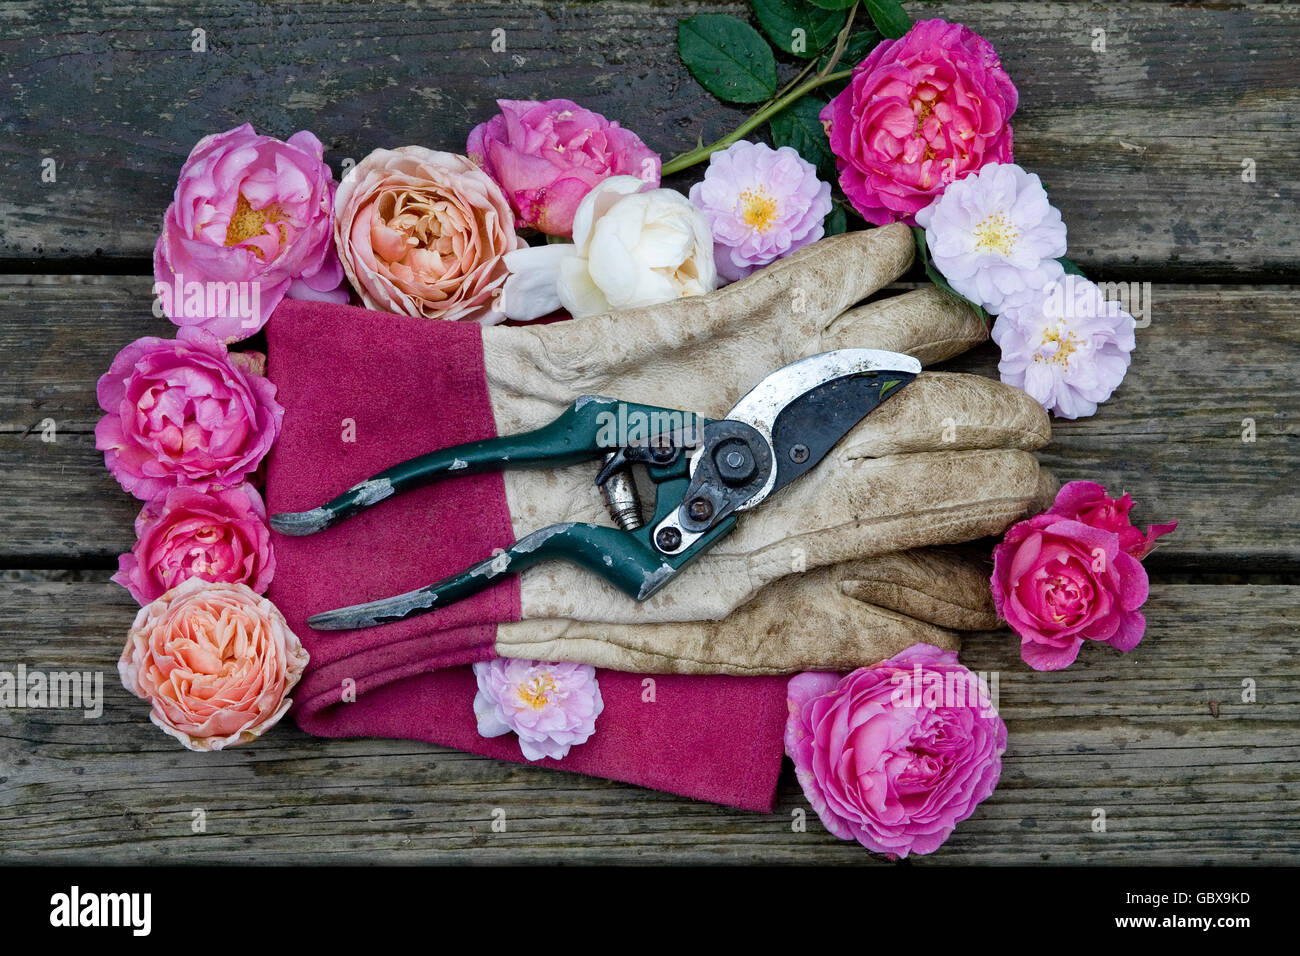 Gardening gloves surrounded by rose heads - Stock Image